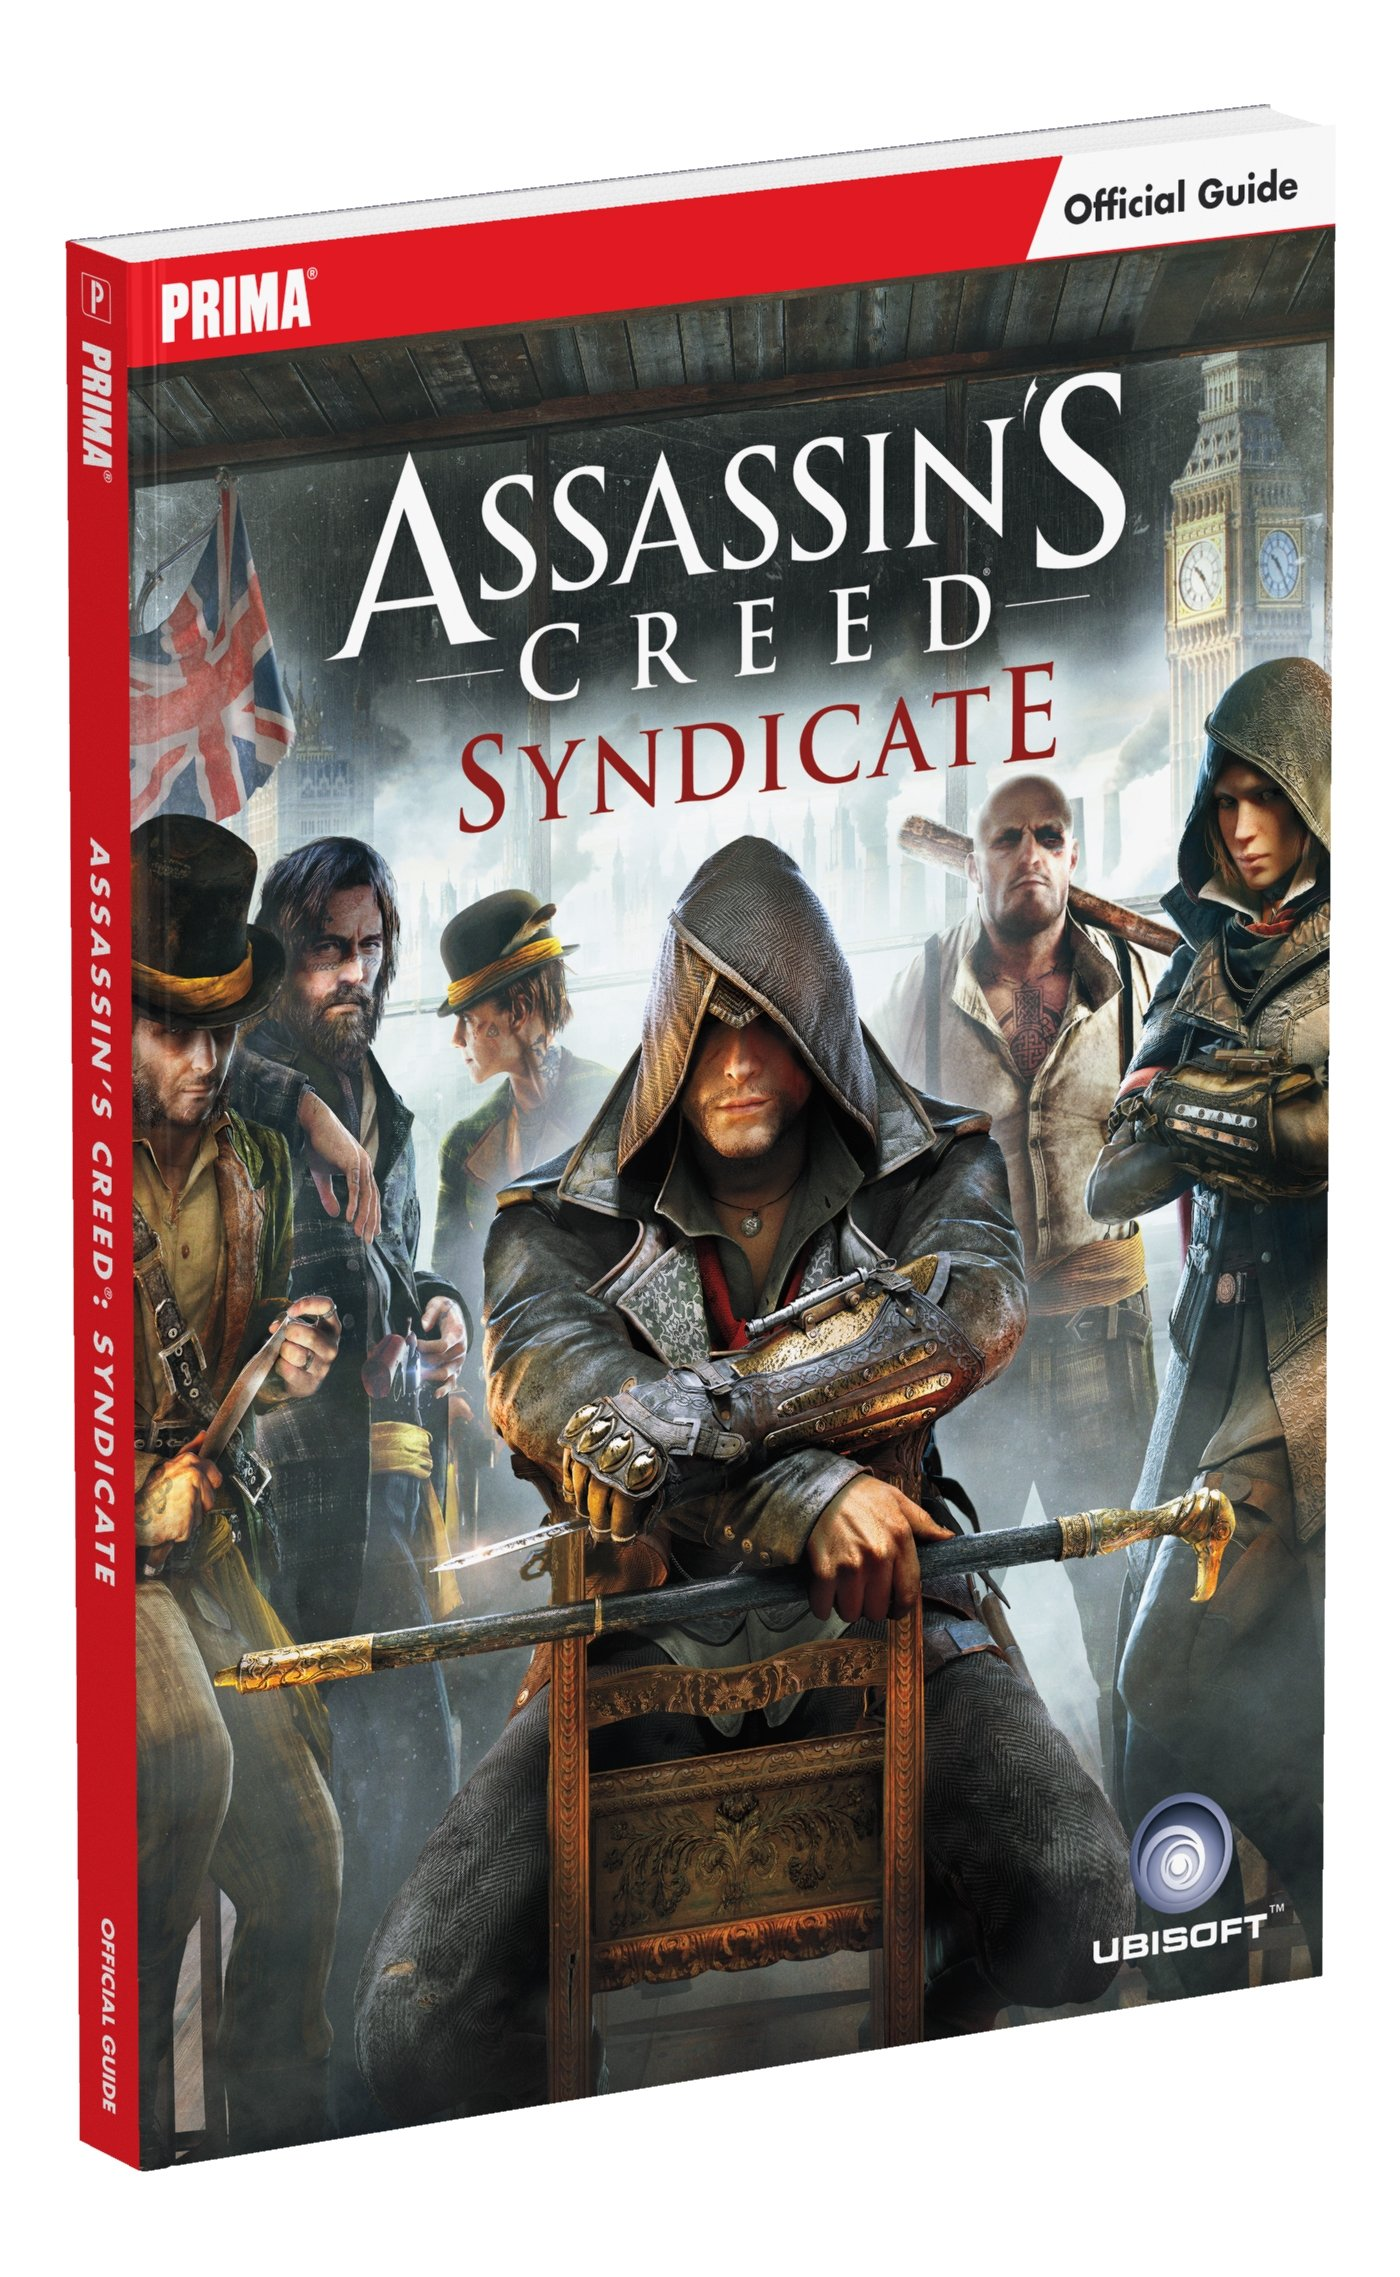 Assassins Creed 3 Official Guide Pdf